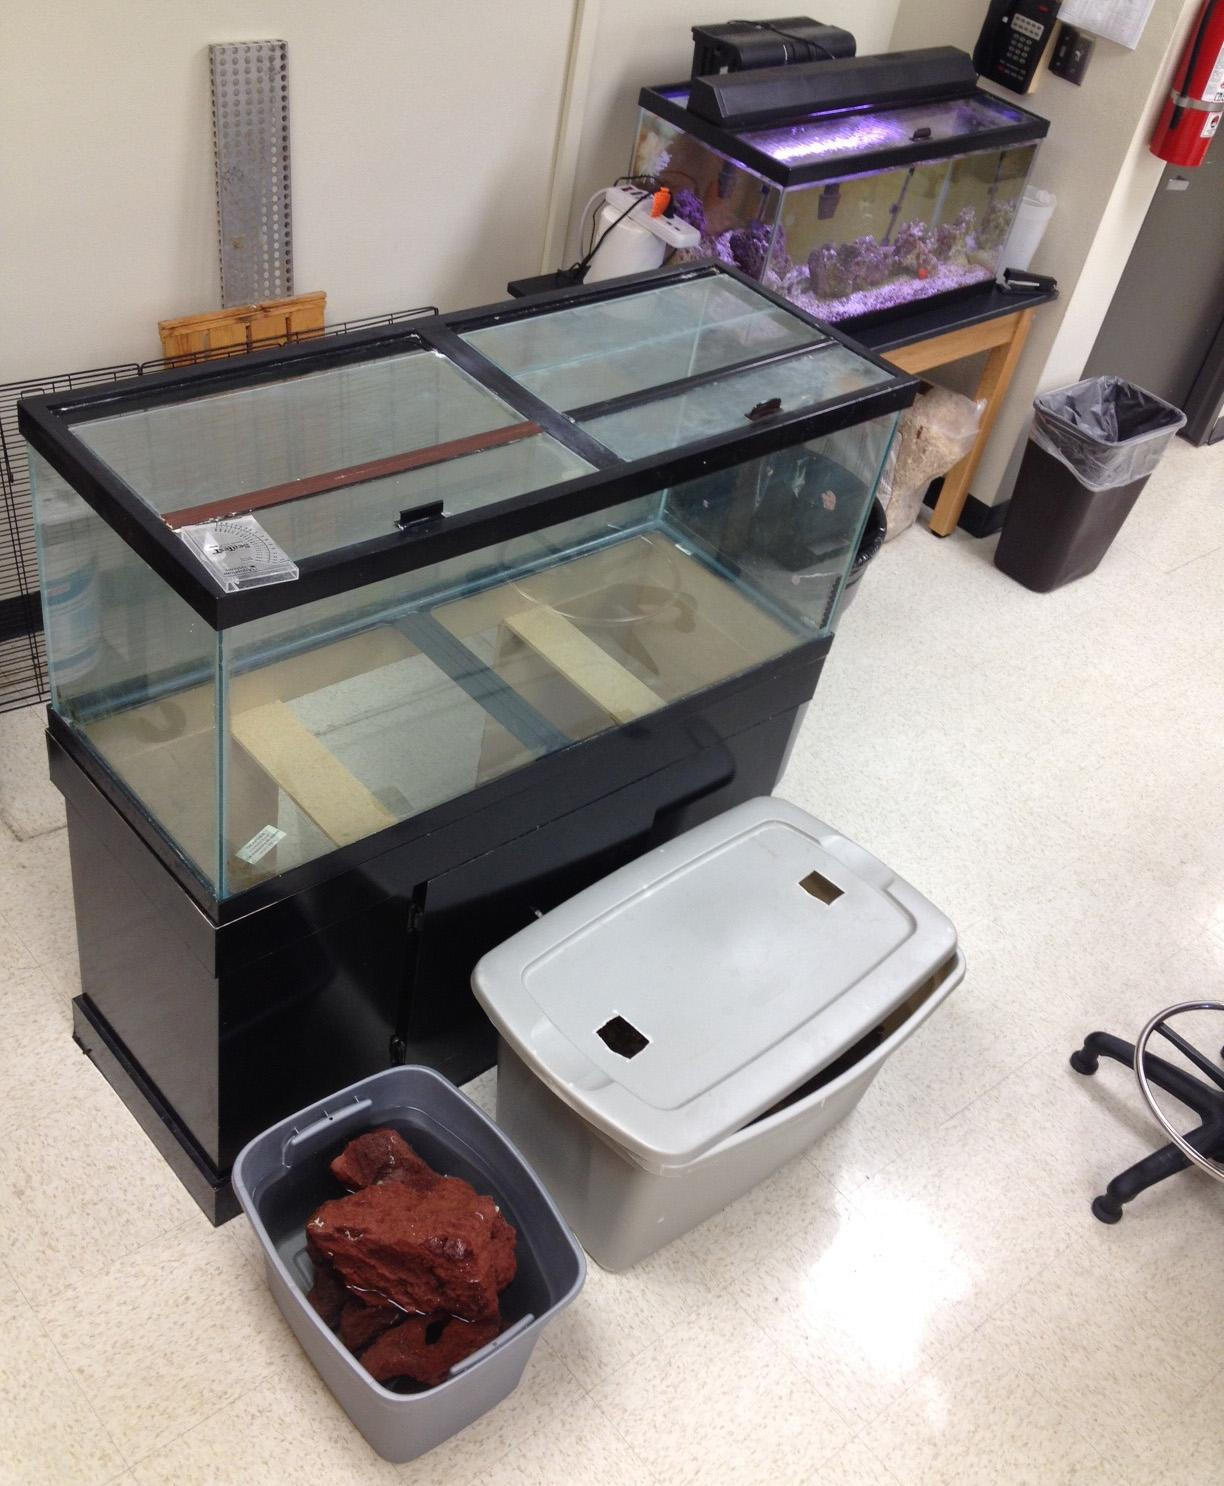 The large fish tank remains in the classroom, next to surviving animals in tubs. Science teacher Kyla Burns plans on taking the larger tank home and only using the smaller tank to hold the aquatic animals she uses for her classes.